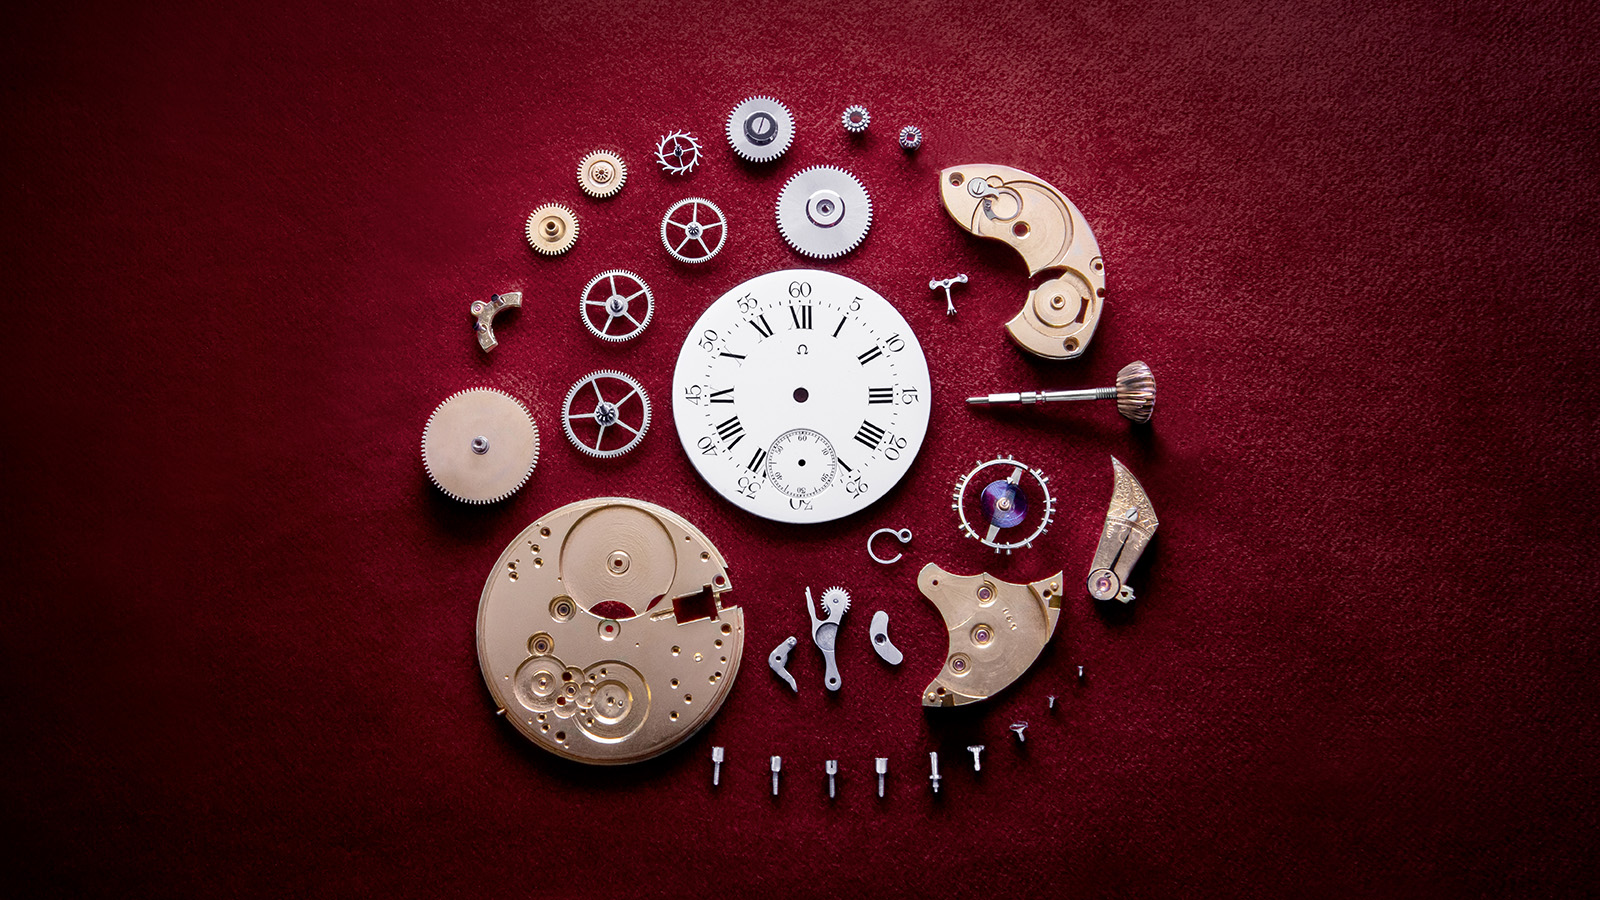 The pieces of the Omega pocket watch mechanism